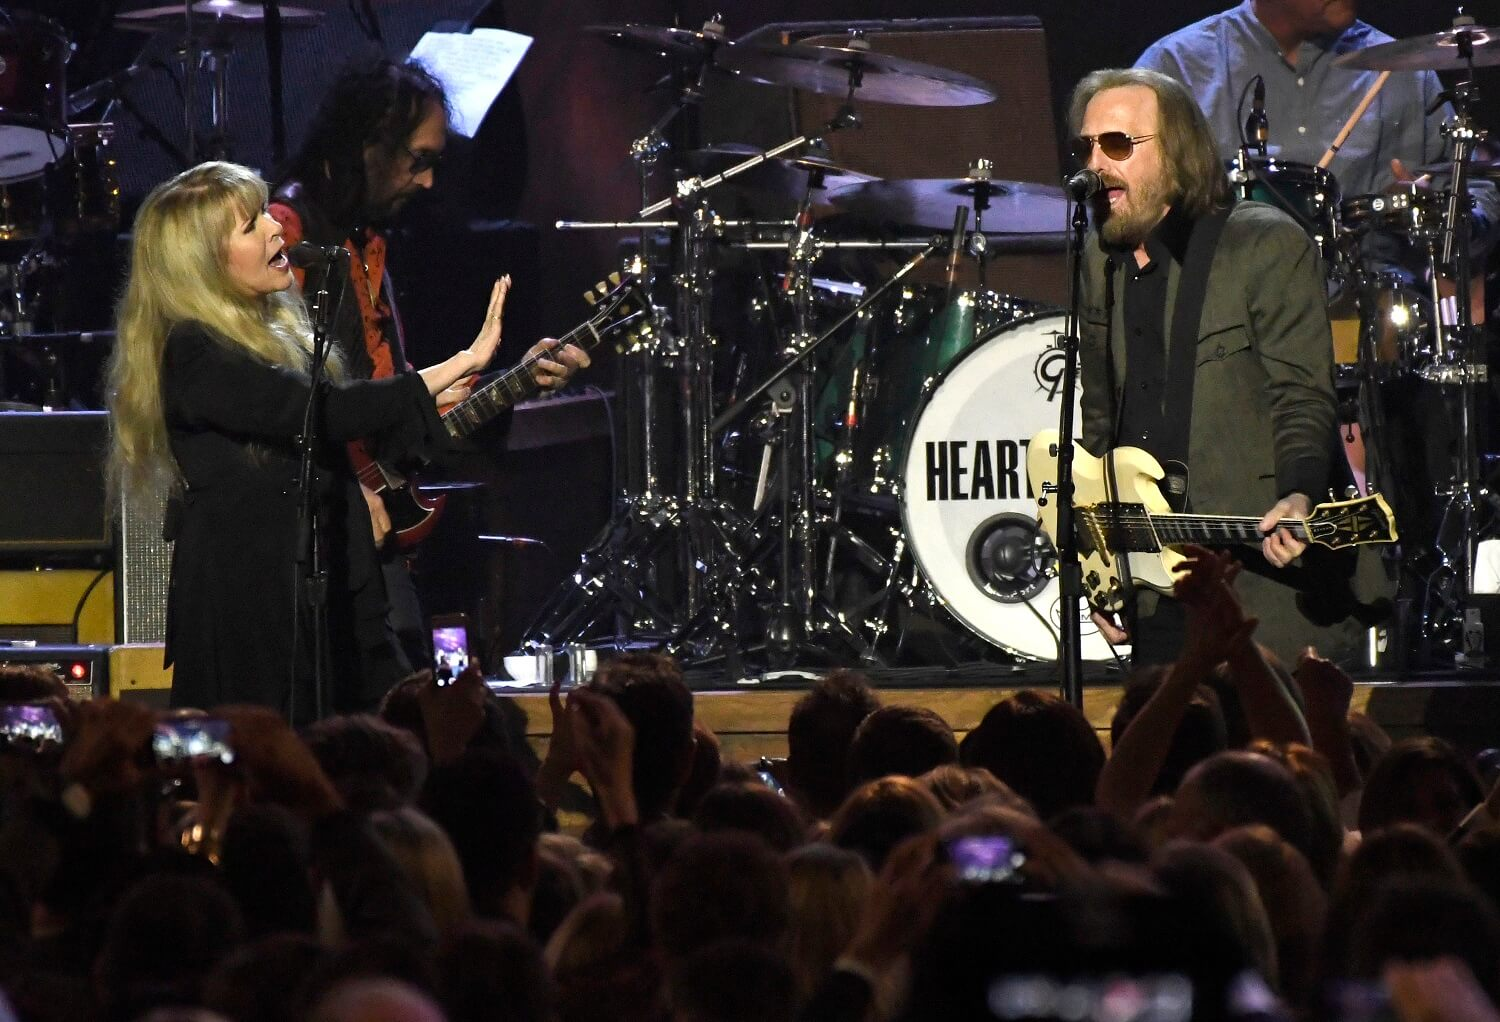 In interview Stevie Nicks talks about the last time she saw Tom Petty